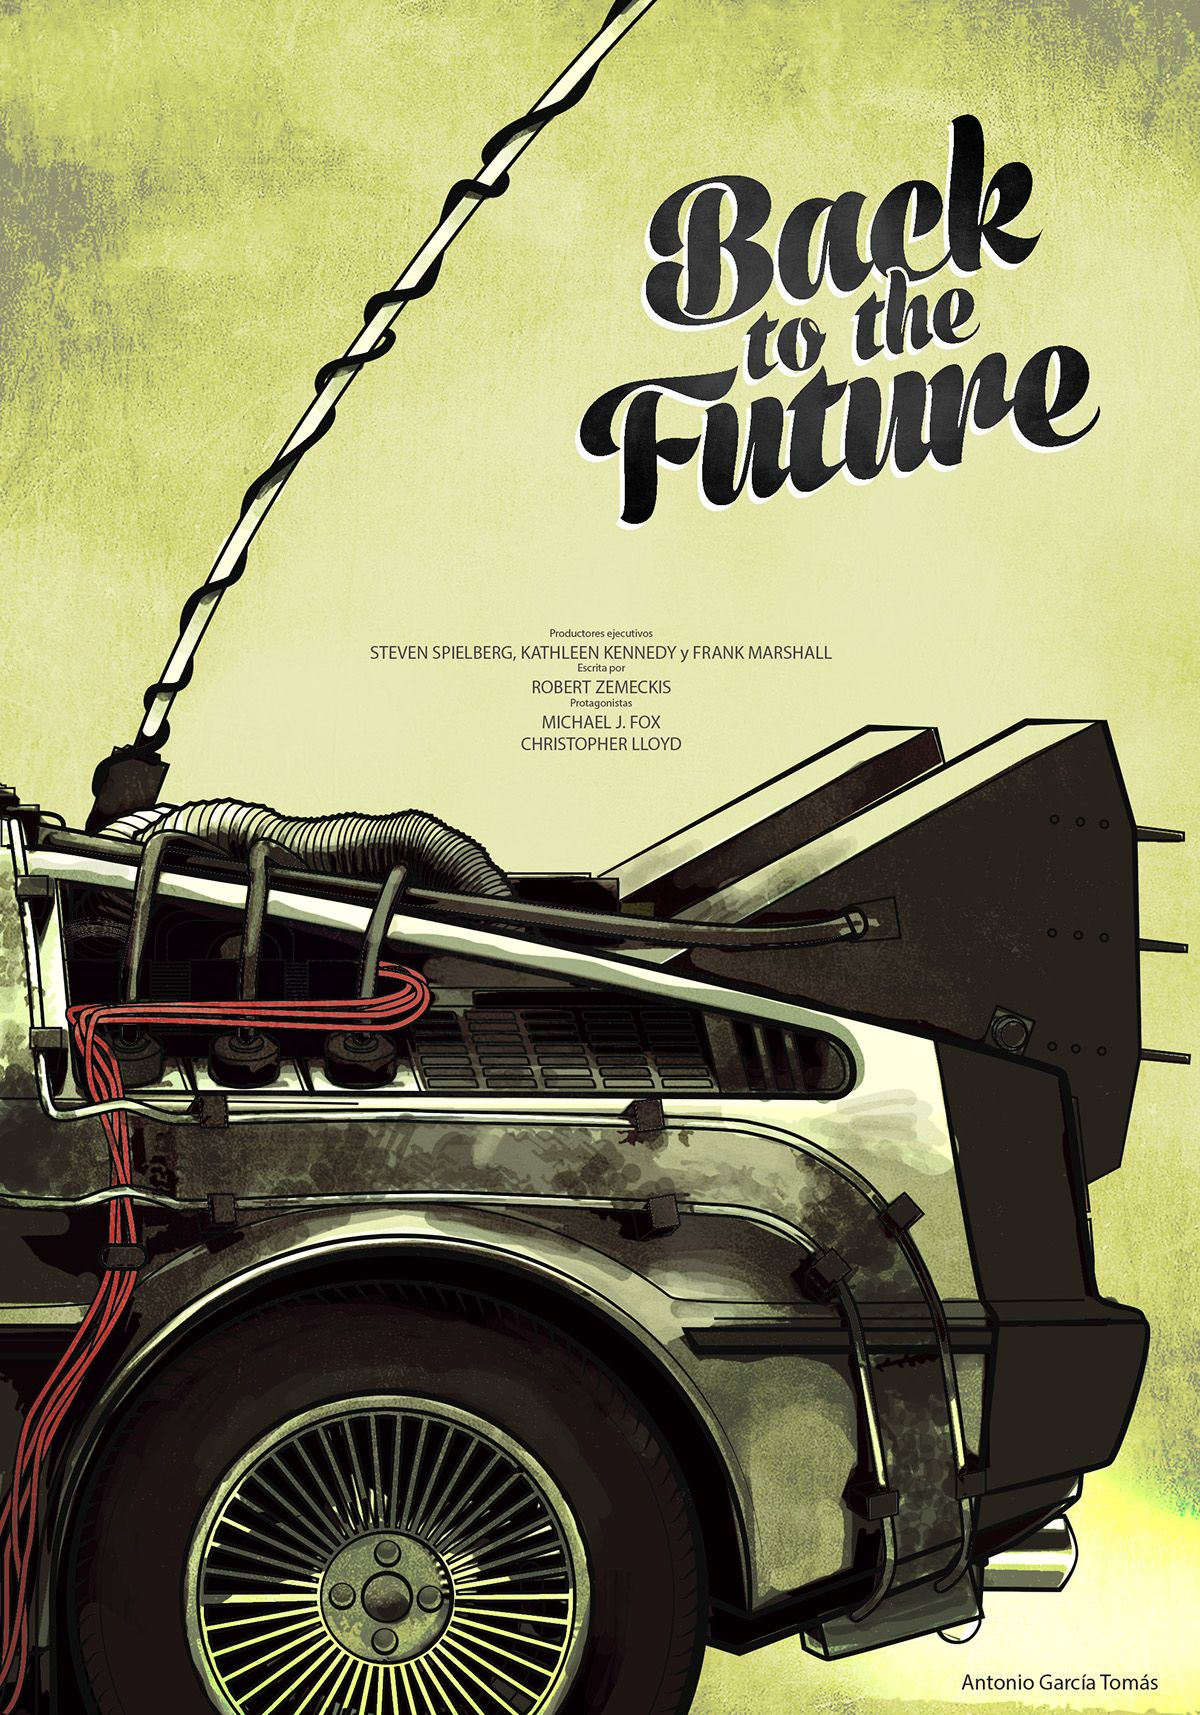 Back to the future on behance with images back to the